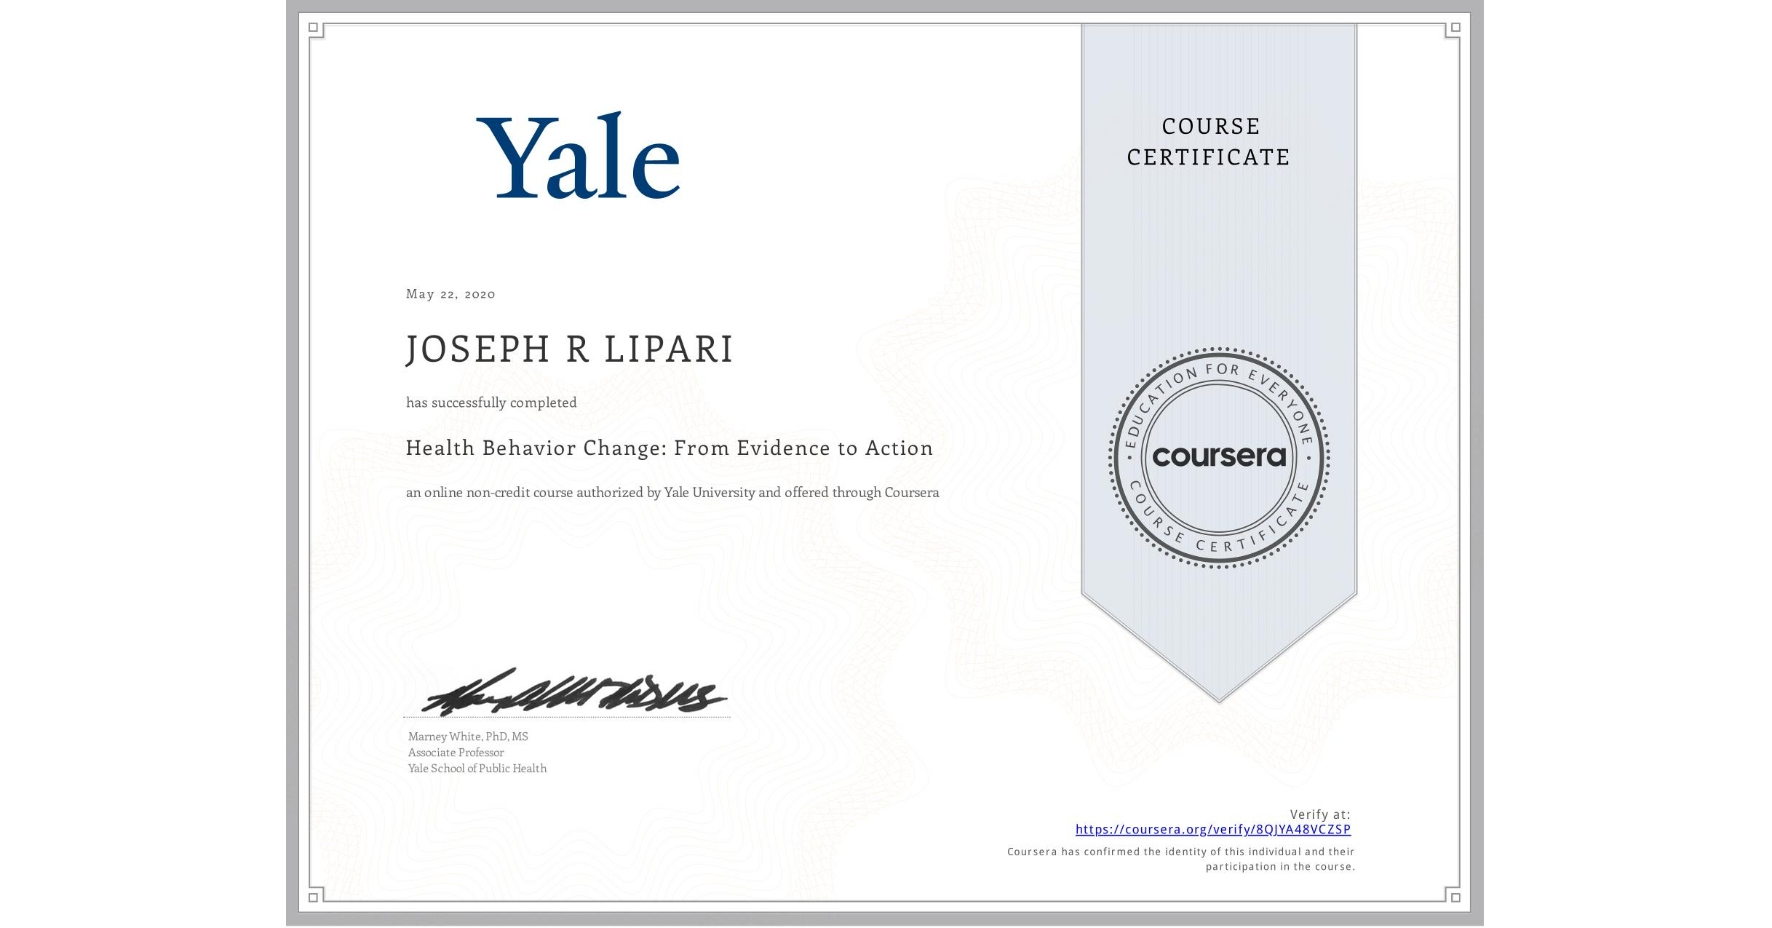 View certificate for JOSEPH R  LIPARI, Health Behavior Change: From Evidence to Action, an online non-credit course authorized by Yale University and offered through Coursera